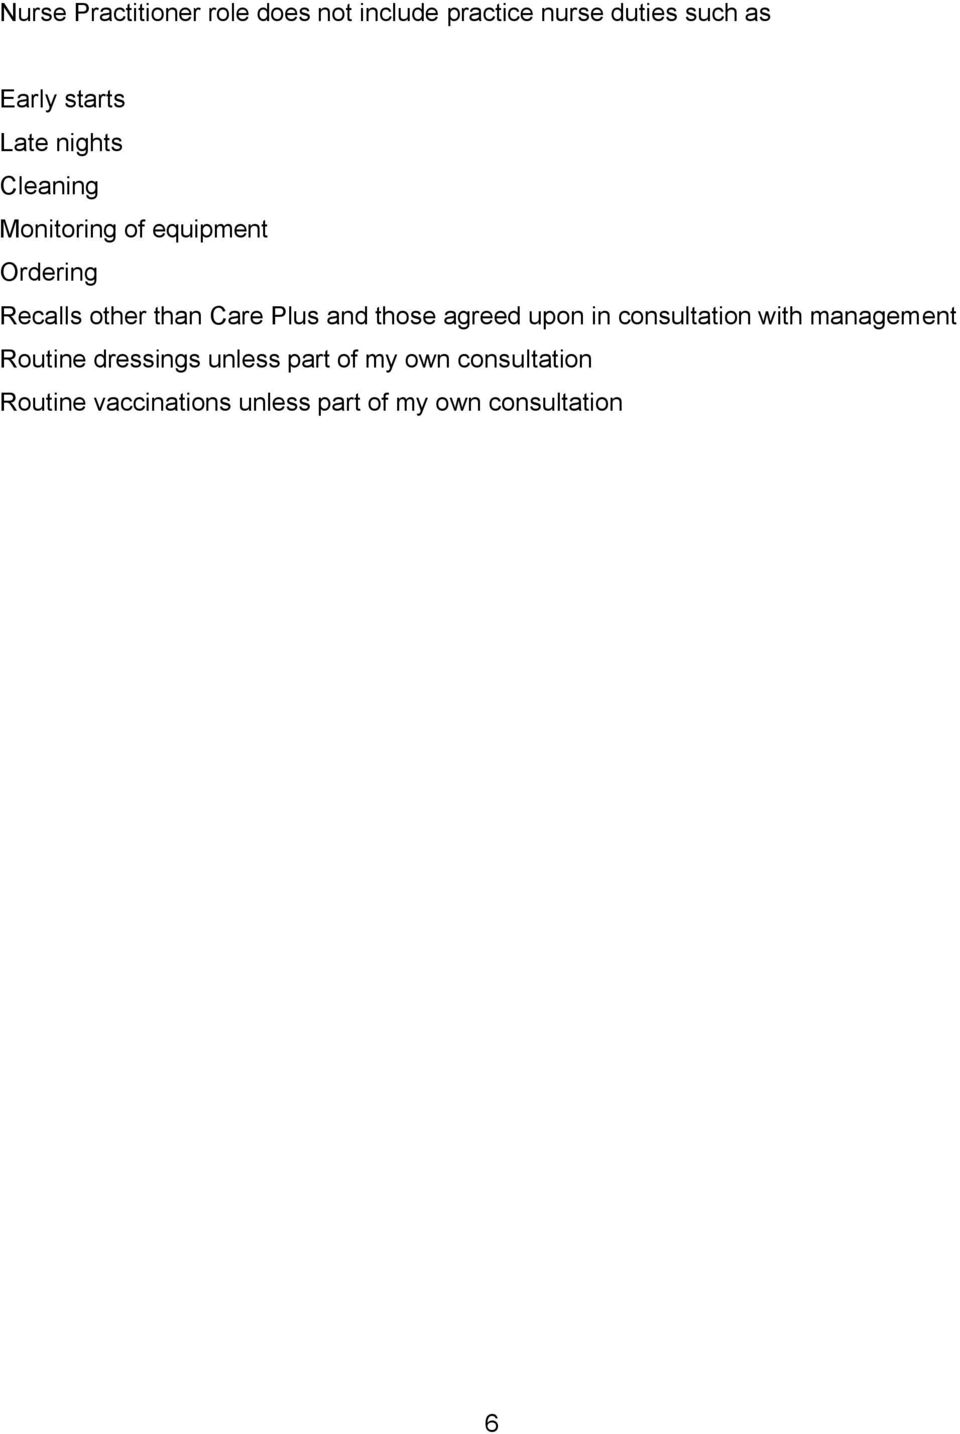 Care Plus and those agreed upon in consultation with management Routine dressings